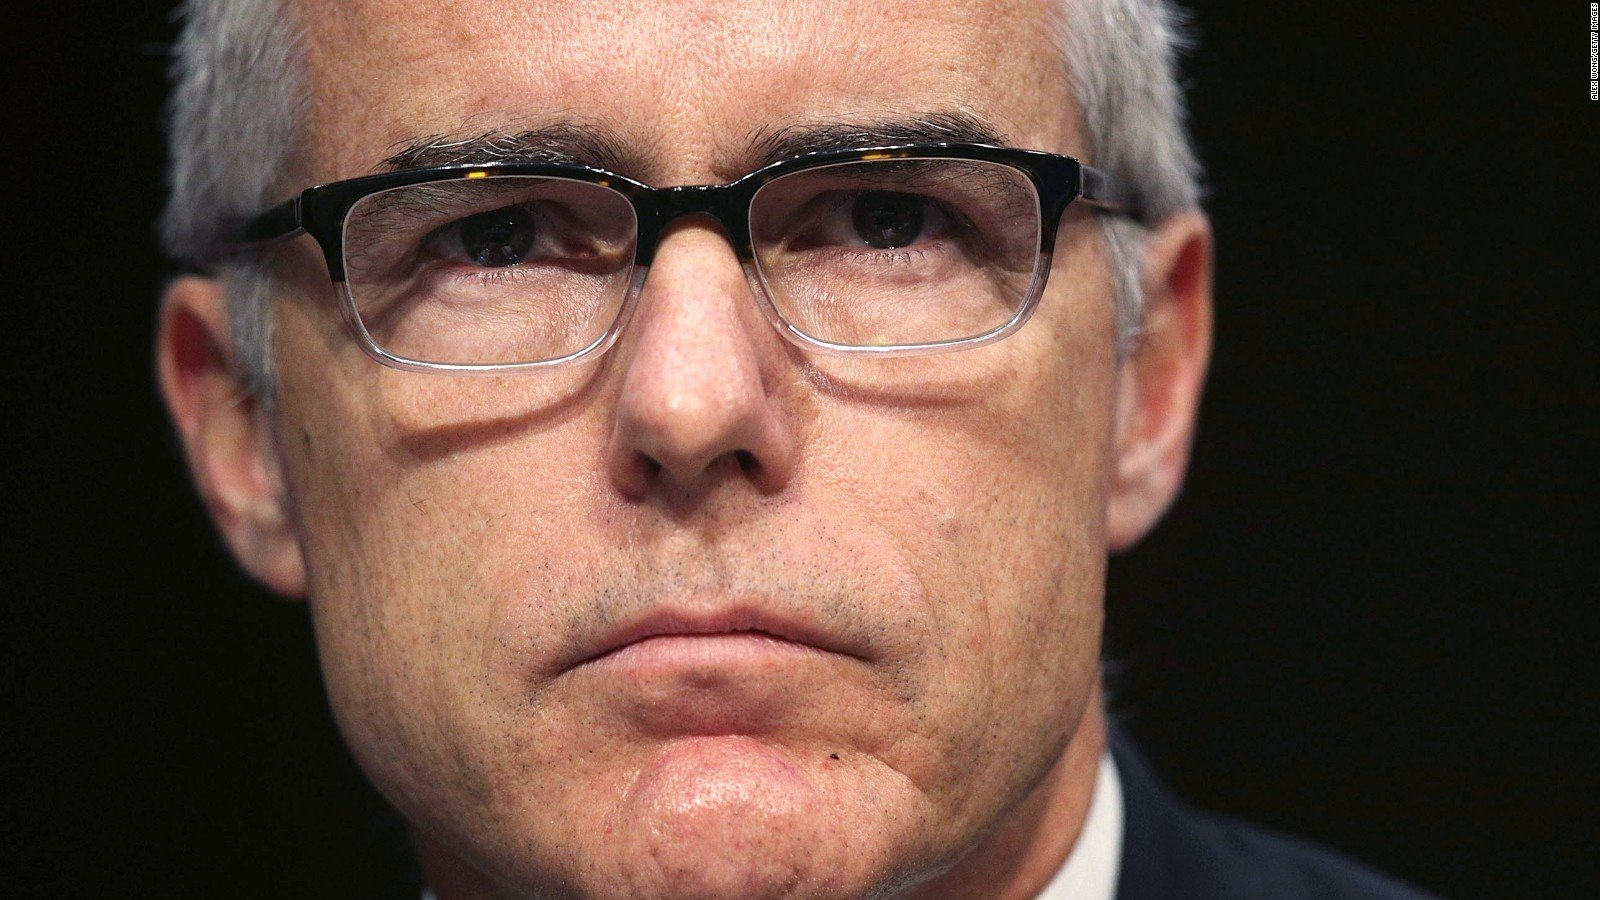 Sessions Poised to Fire FBIs Disgraced Andrew McCabe Before He Can Officially Retire